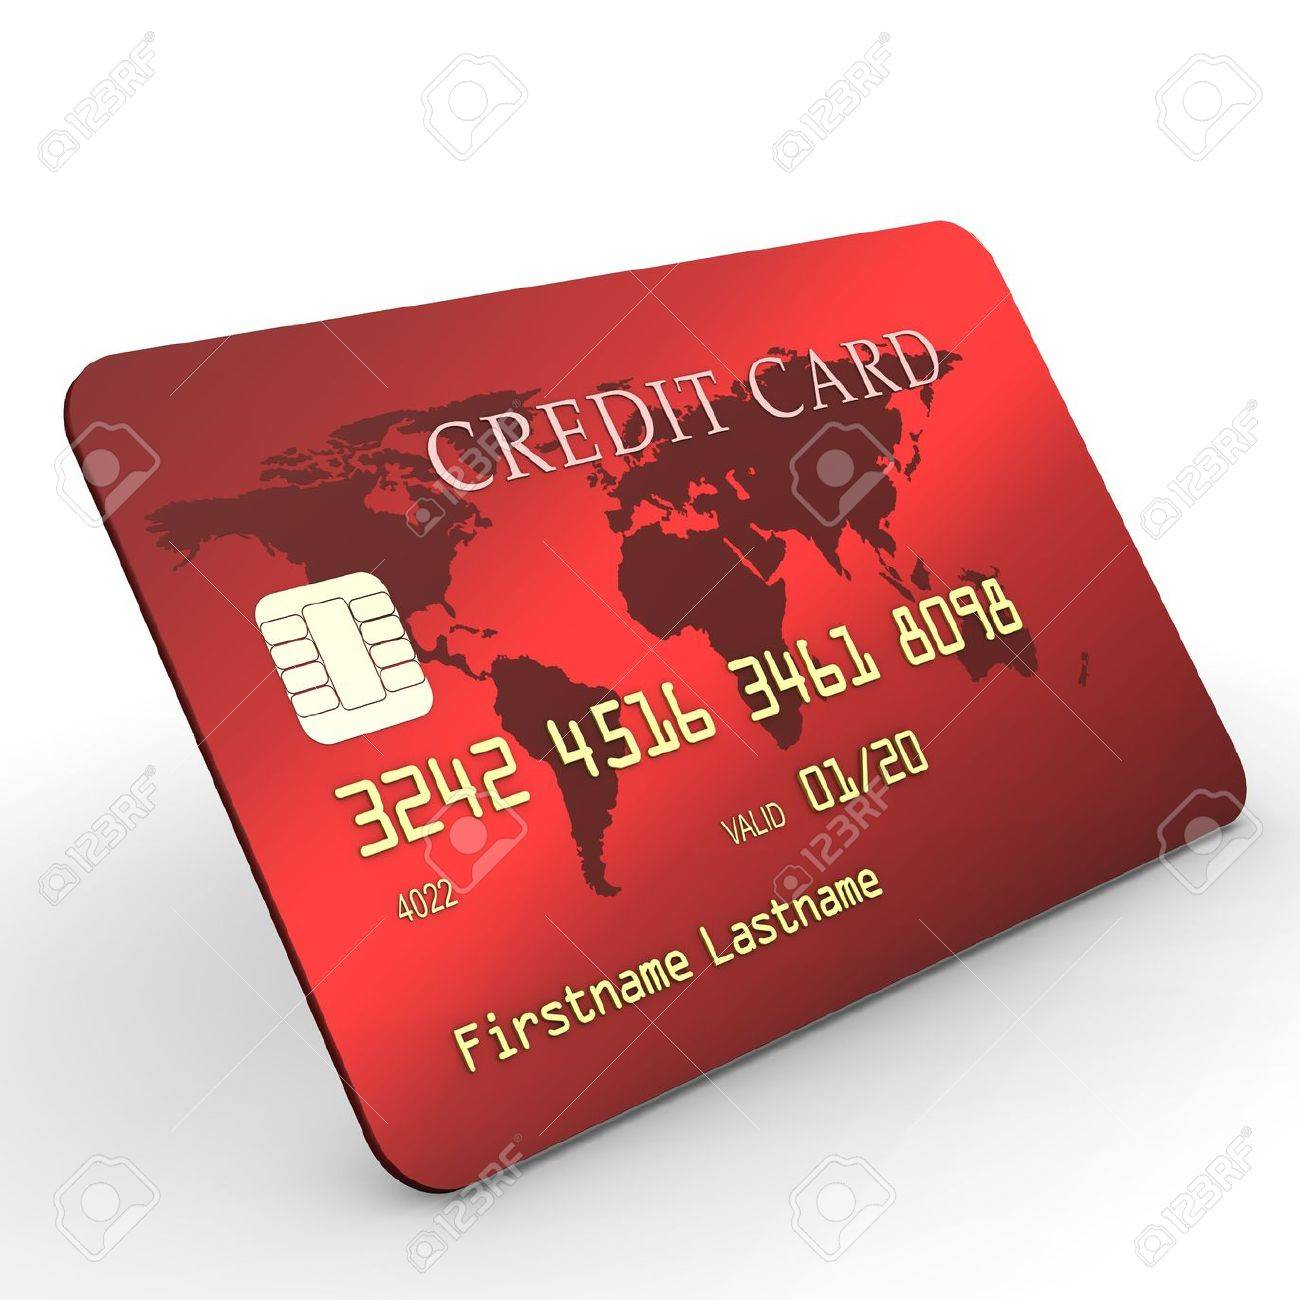 Red credit card with golden text on white background Stock Photo - 13019346